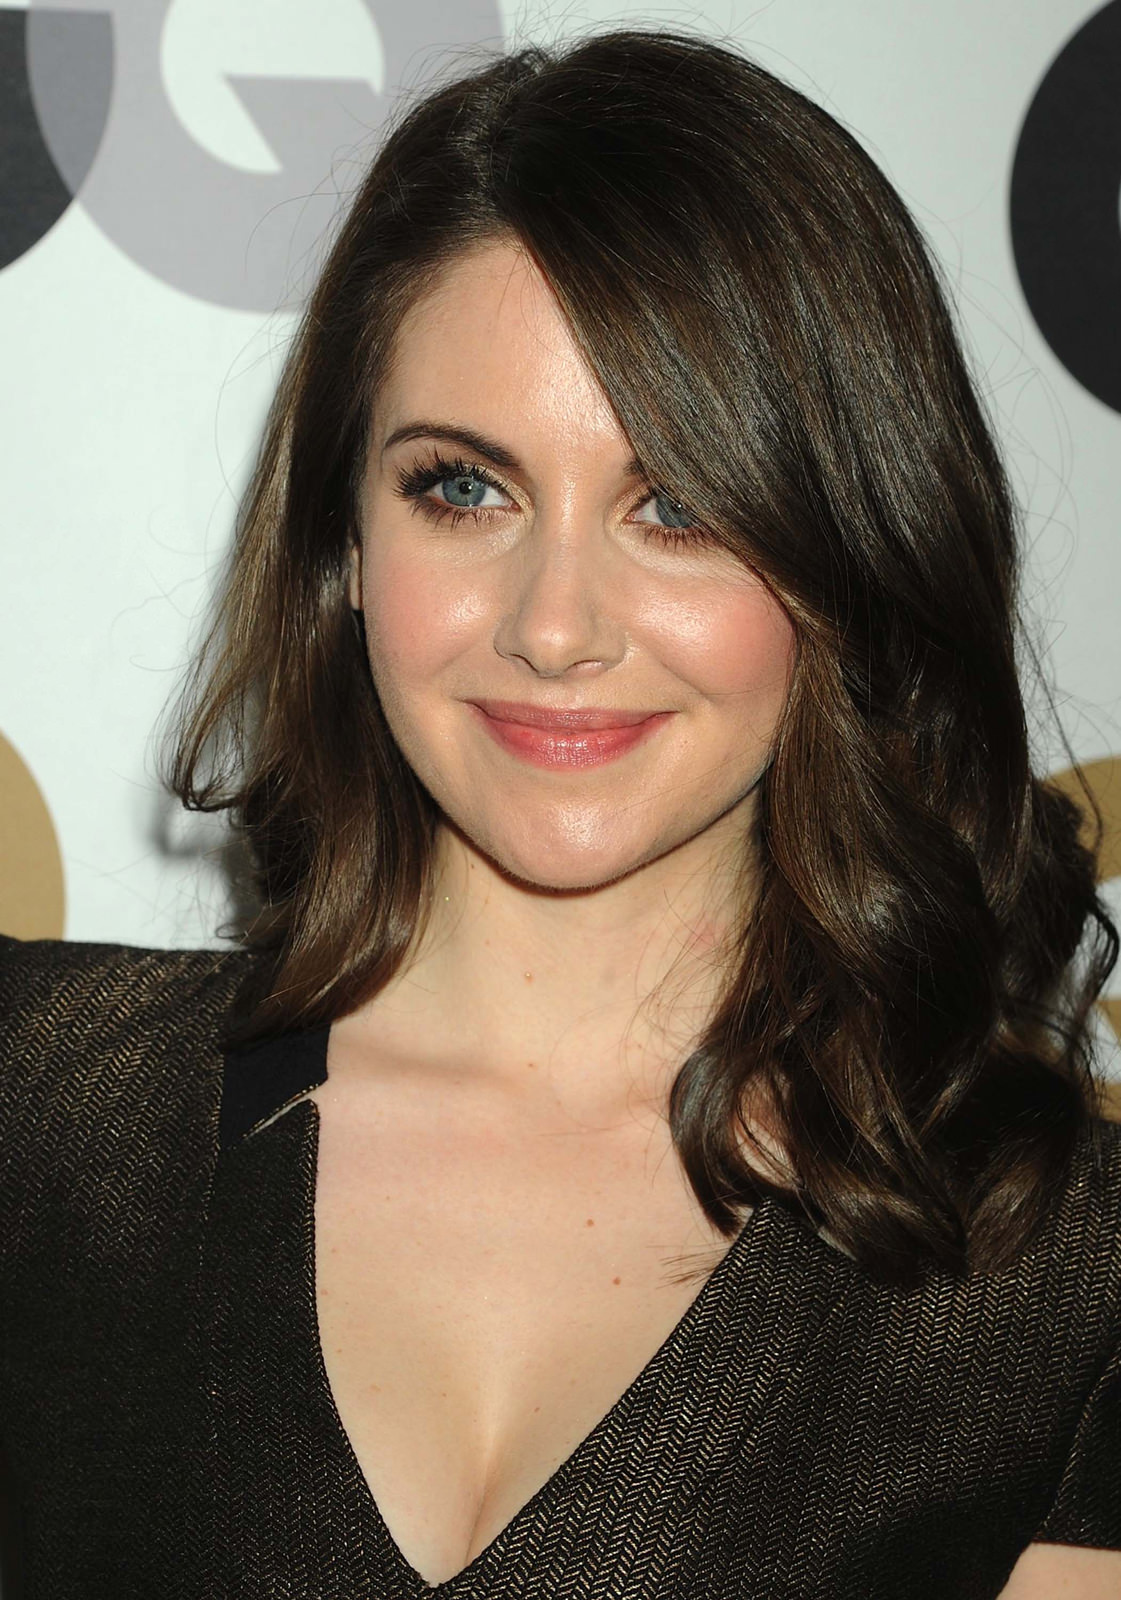 Alison Brie Photo Gallery